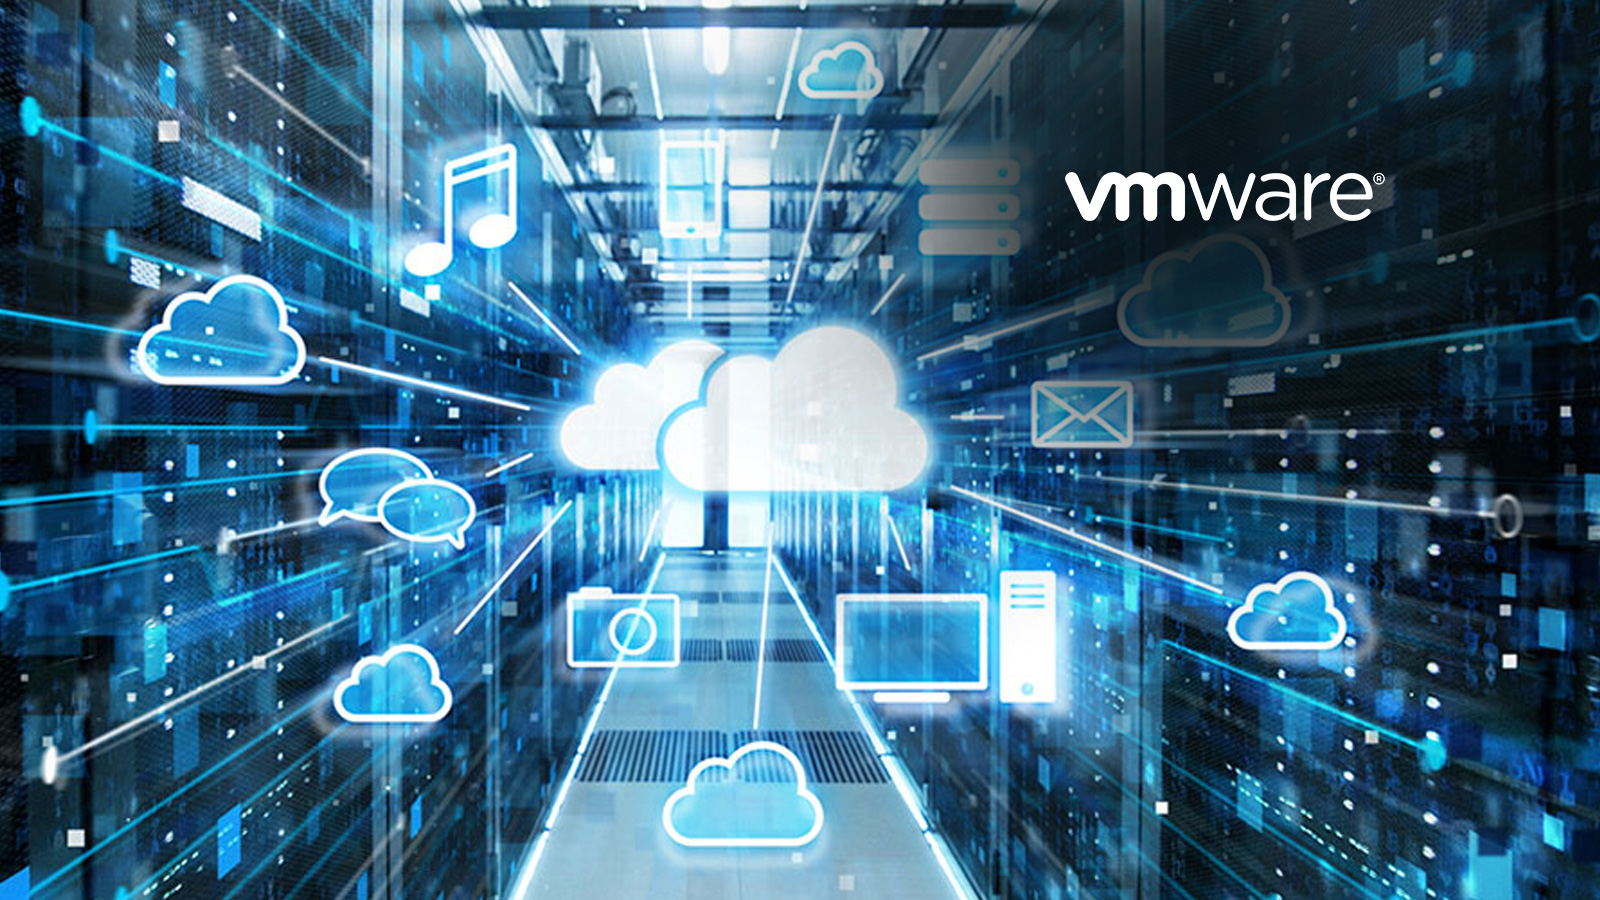 VMware Acquires Bitnami in Order to Deliver Fully Functional